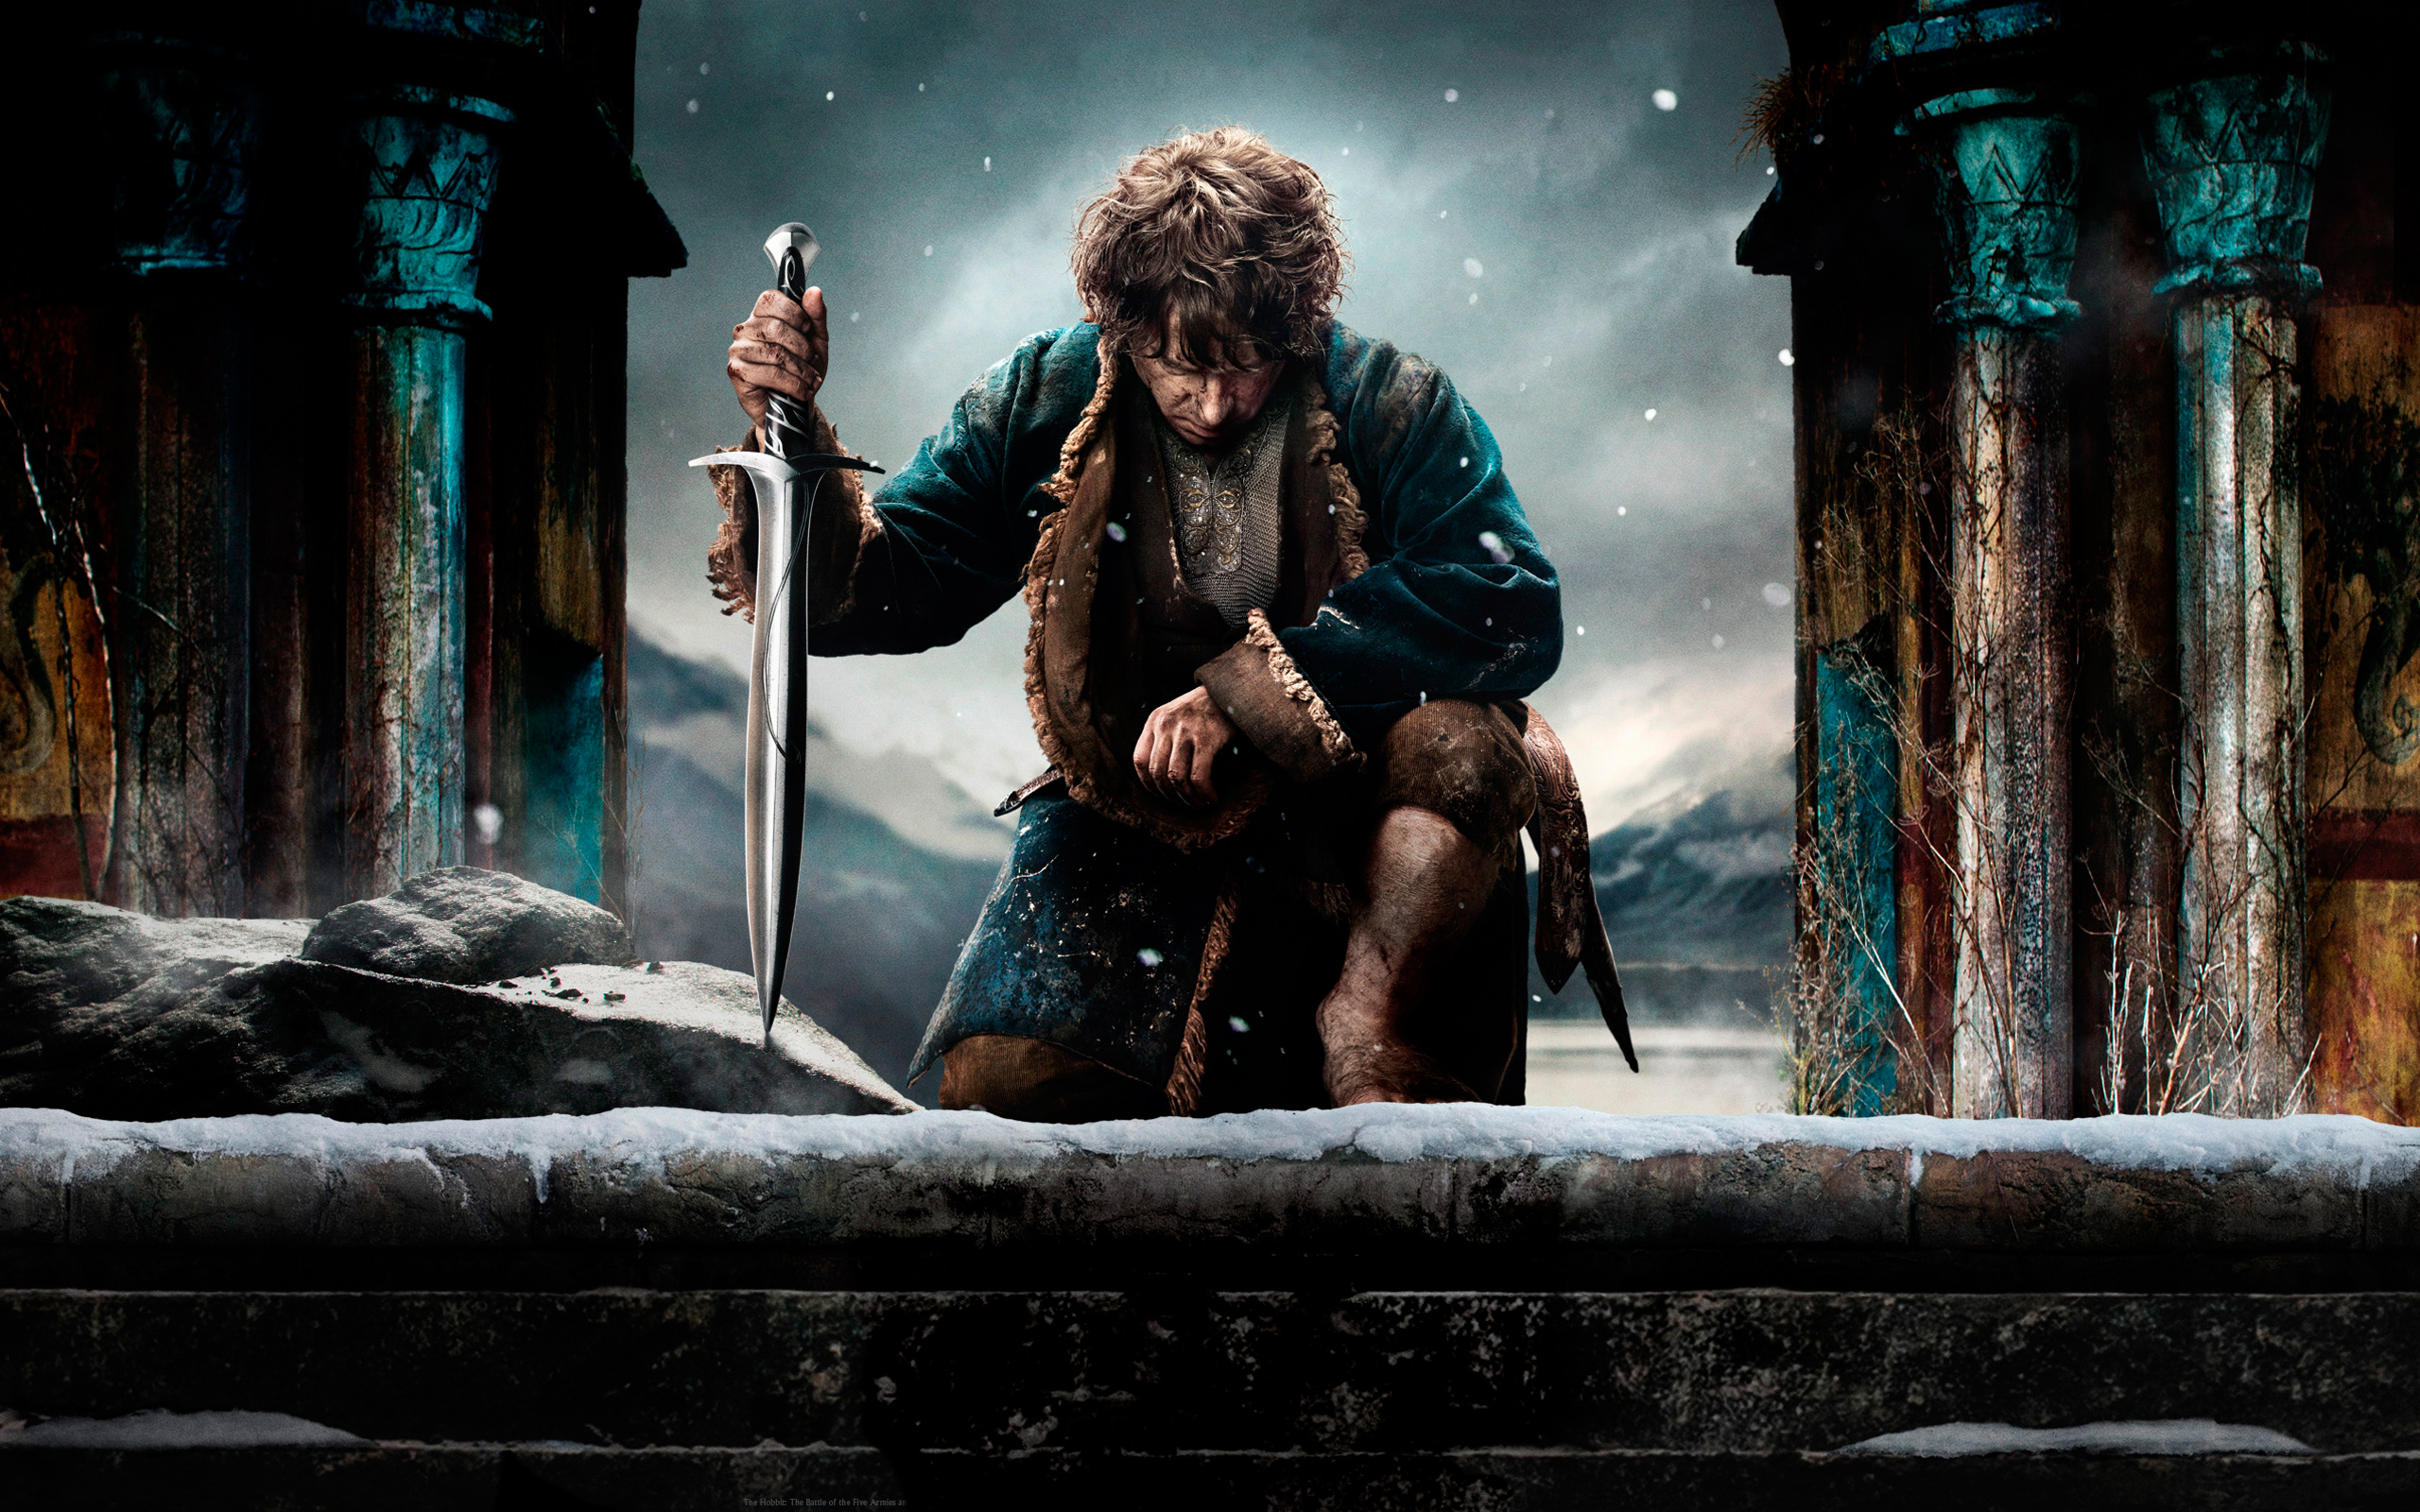 The Hobbit The Battle of the Five Armies Movie Exclusive HD Wallpapers 2560x1600